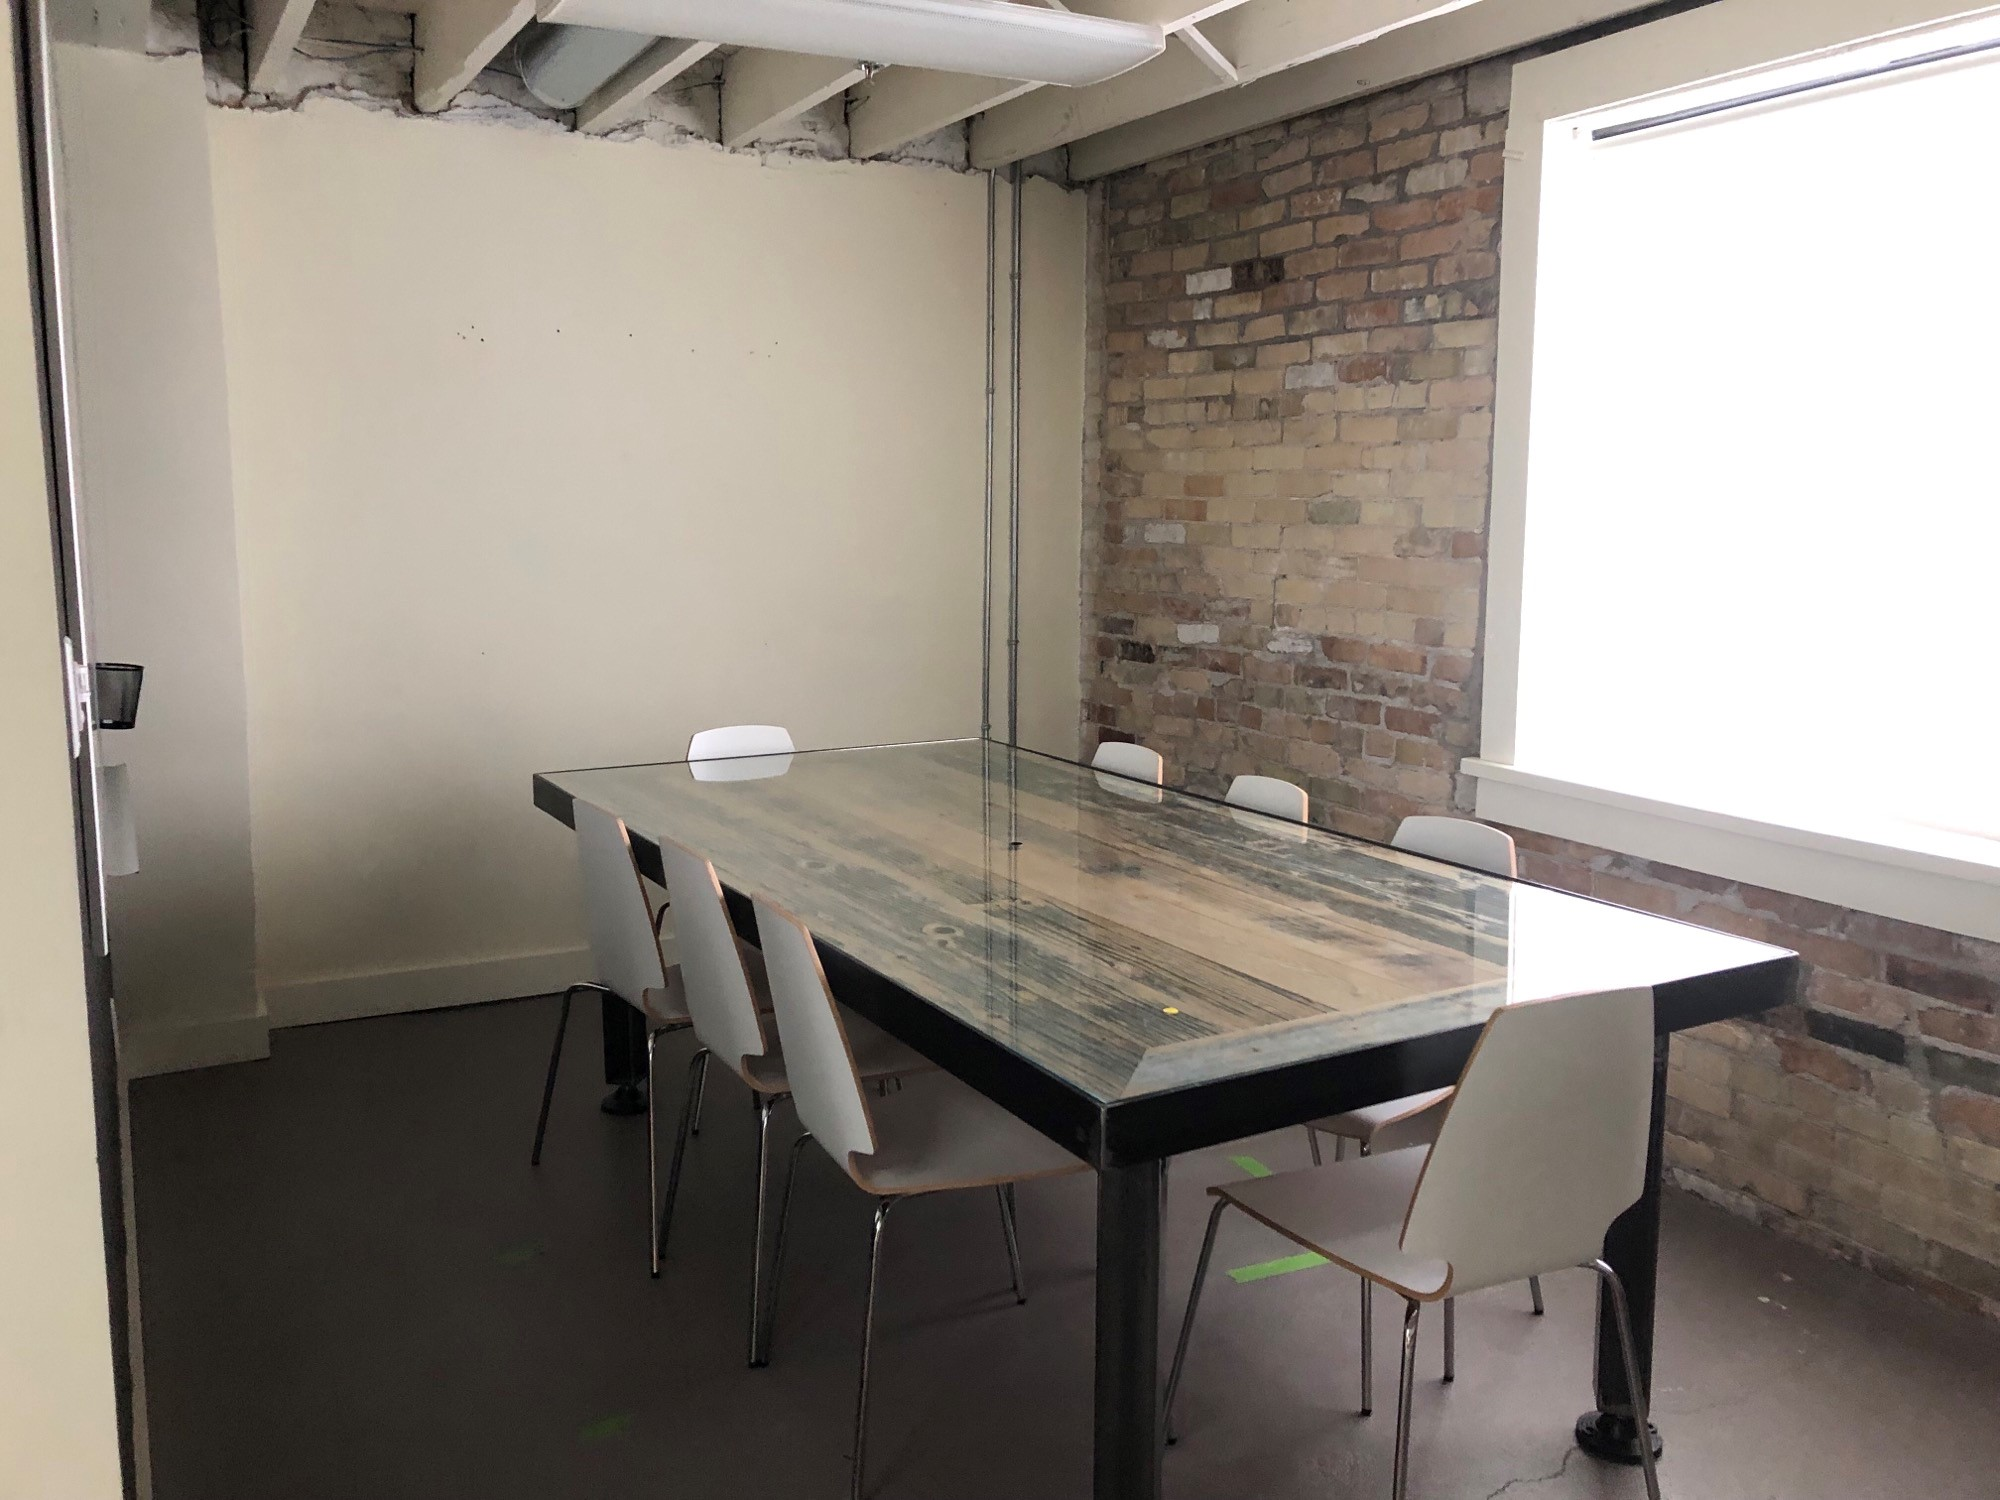 3 Regina Street North, (Suite A), Waterloo | Prime Office Space for Lease